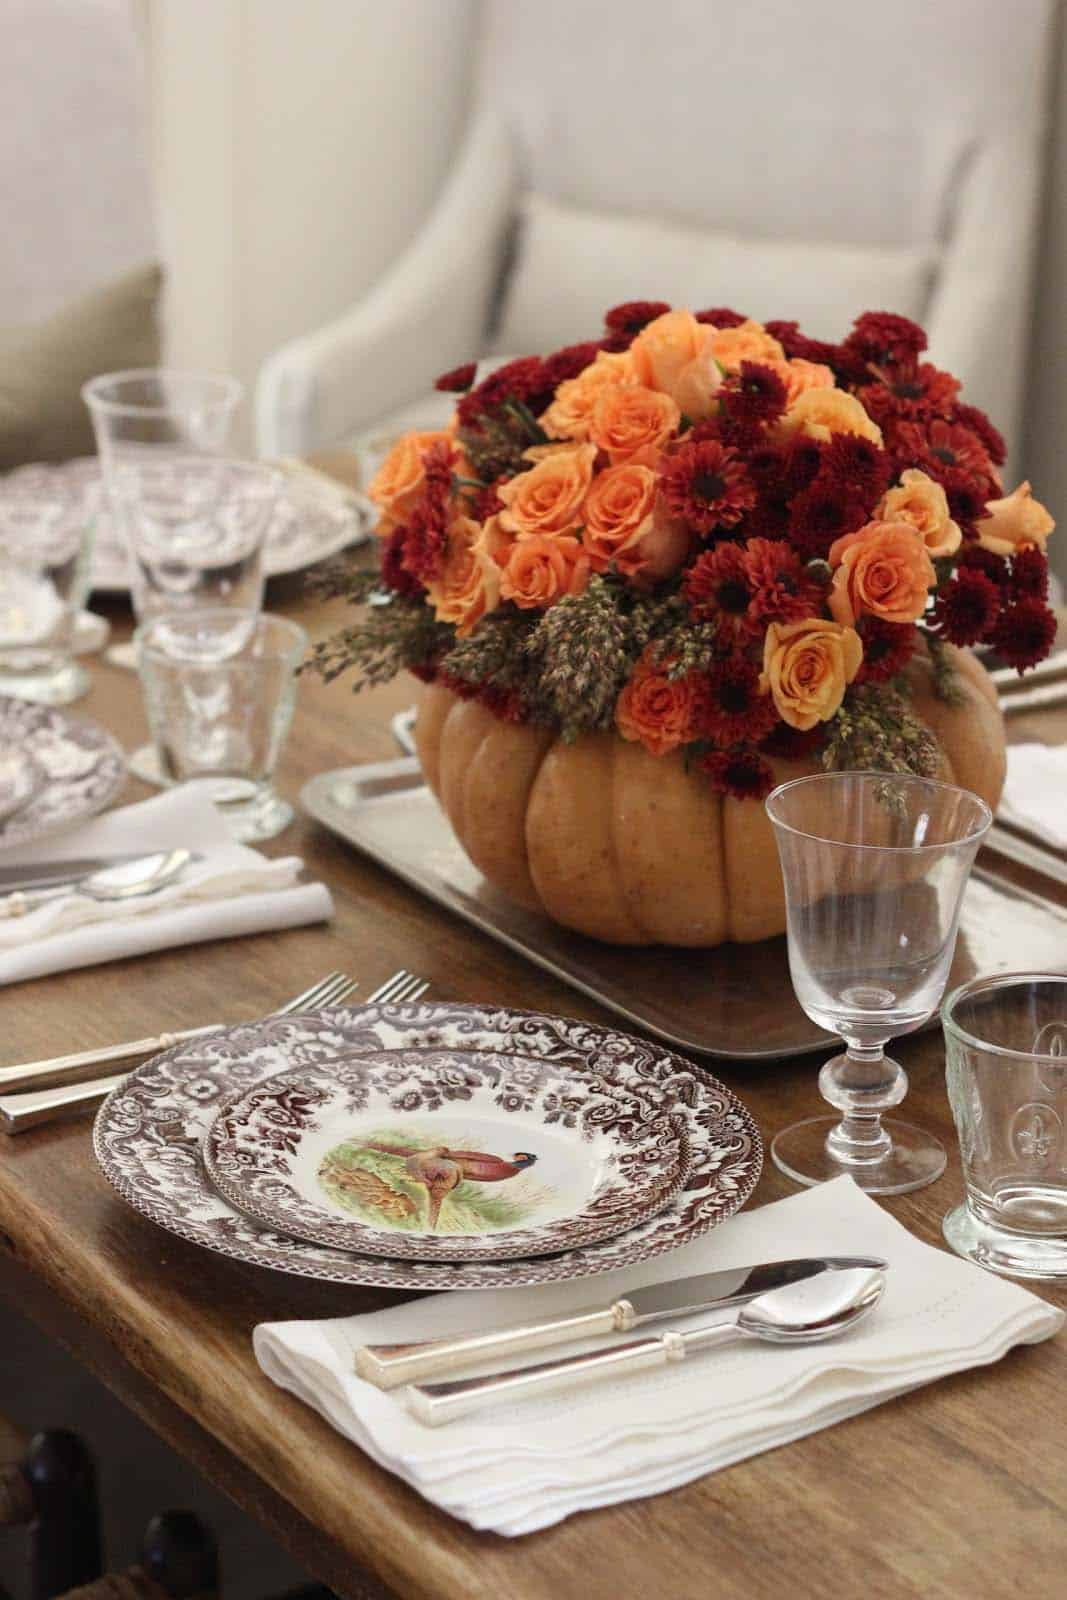 Amazing-Fall-Table-Decor-Ideas-For-Decorating-16-1-Kindesign